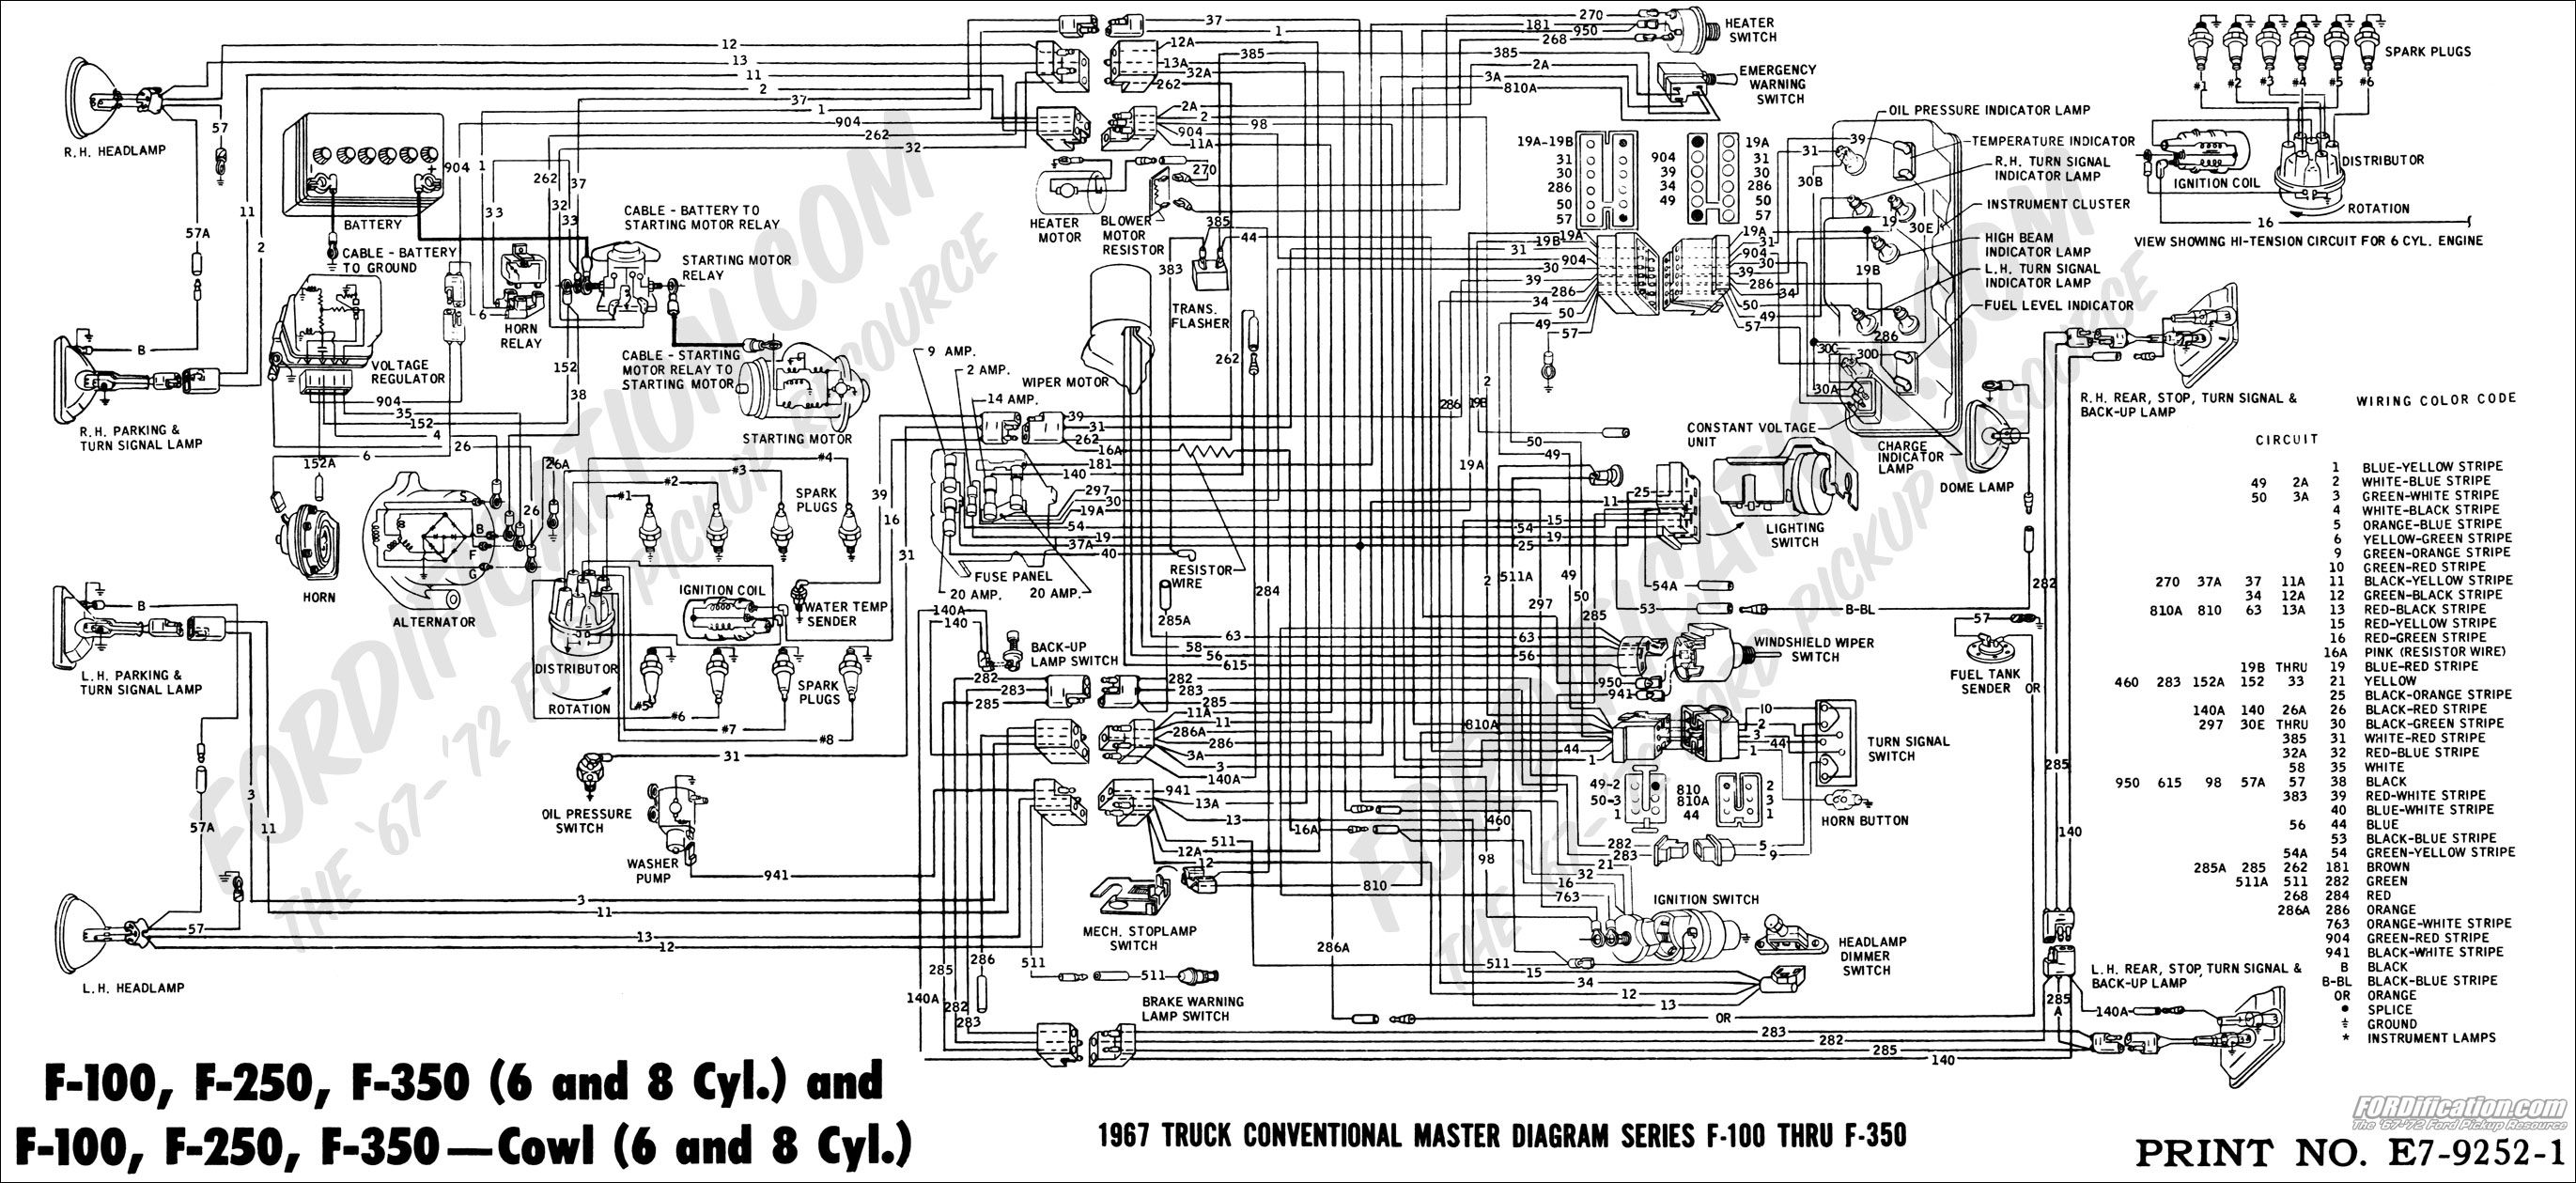 8e608320d8e6c71ff5bbdb2efdd7ada1 ford truck technical drawings and schematics section h wiring Ford E 350 Wiring Diagrams at honlapkeszites.co